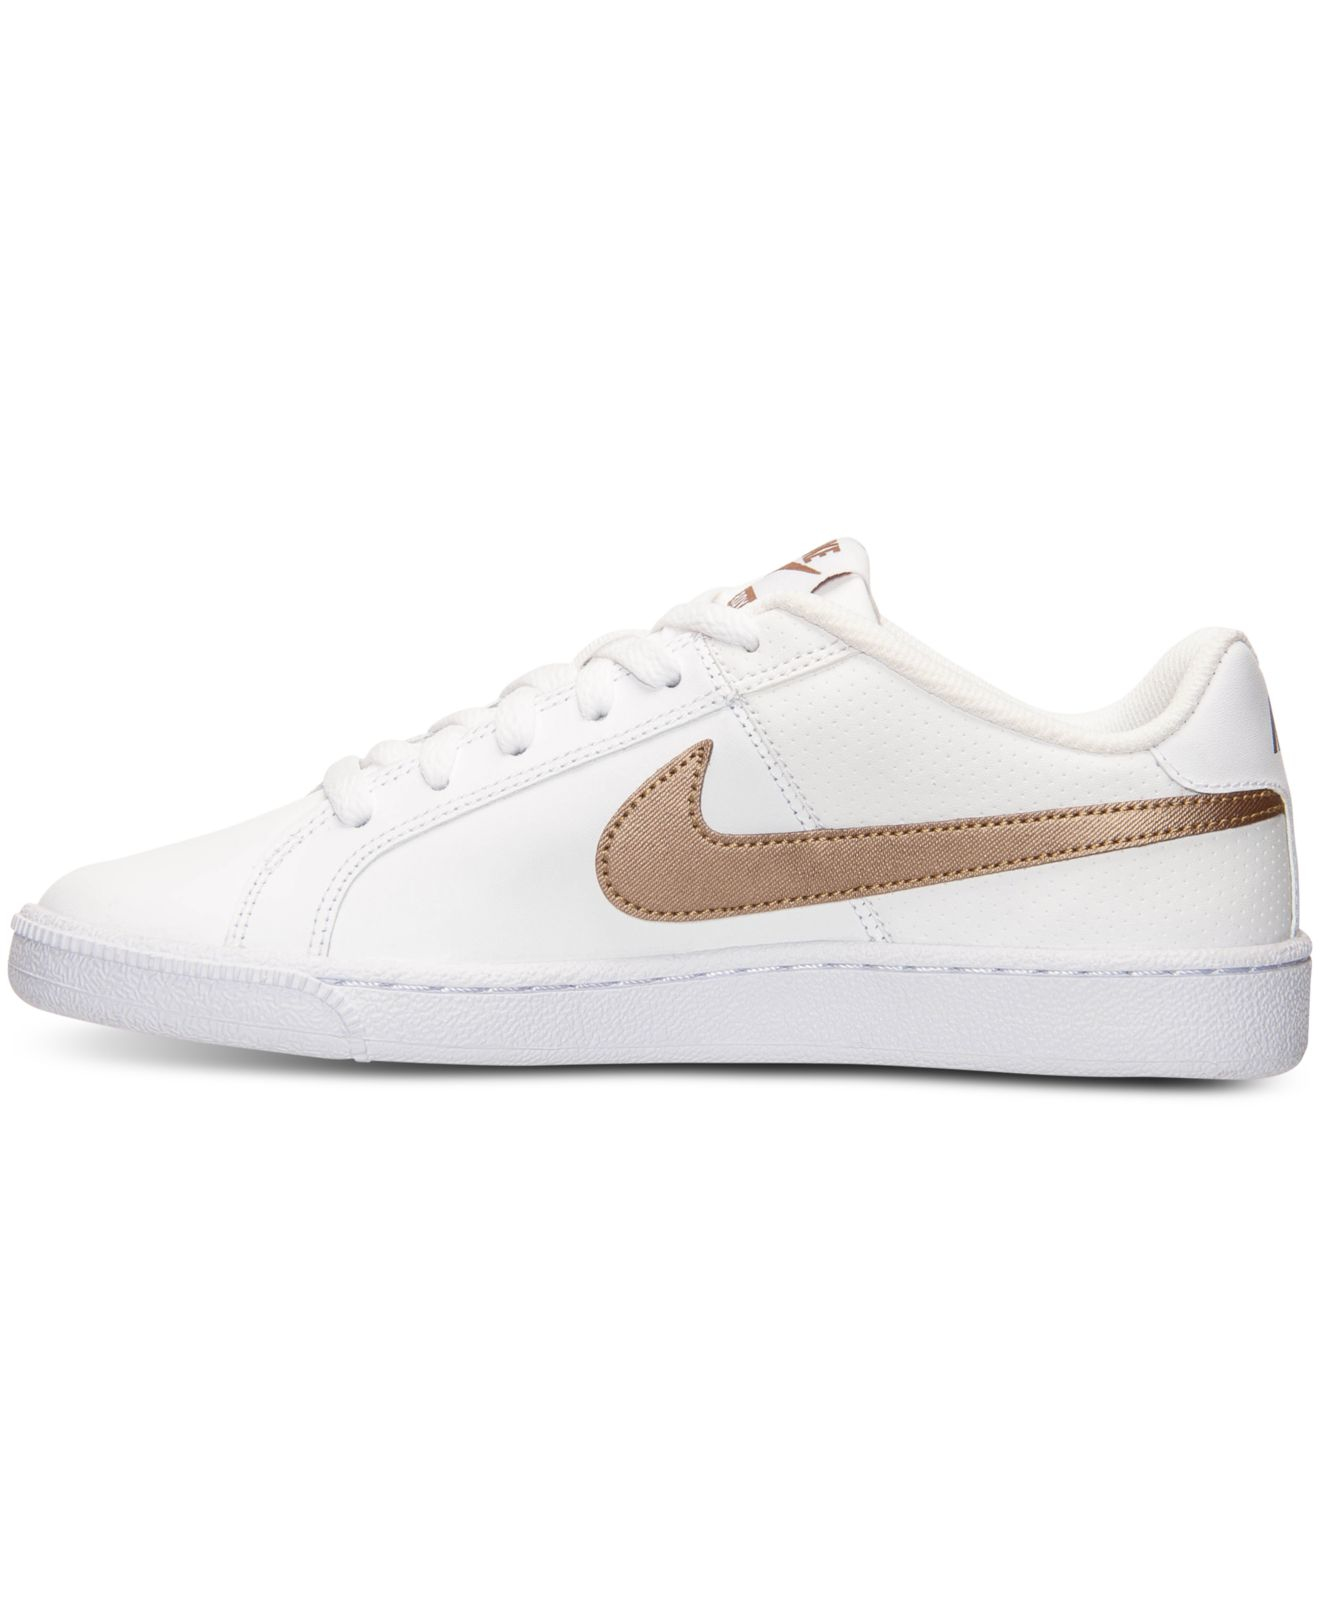 Lyst - Nike Women s Court Royale Casual Sneakers From Finish Line in ... 7b209ce206